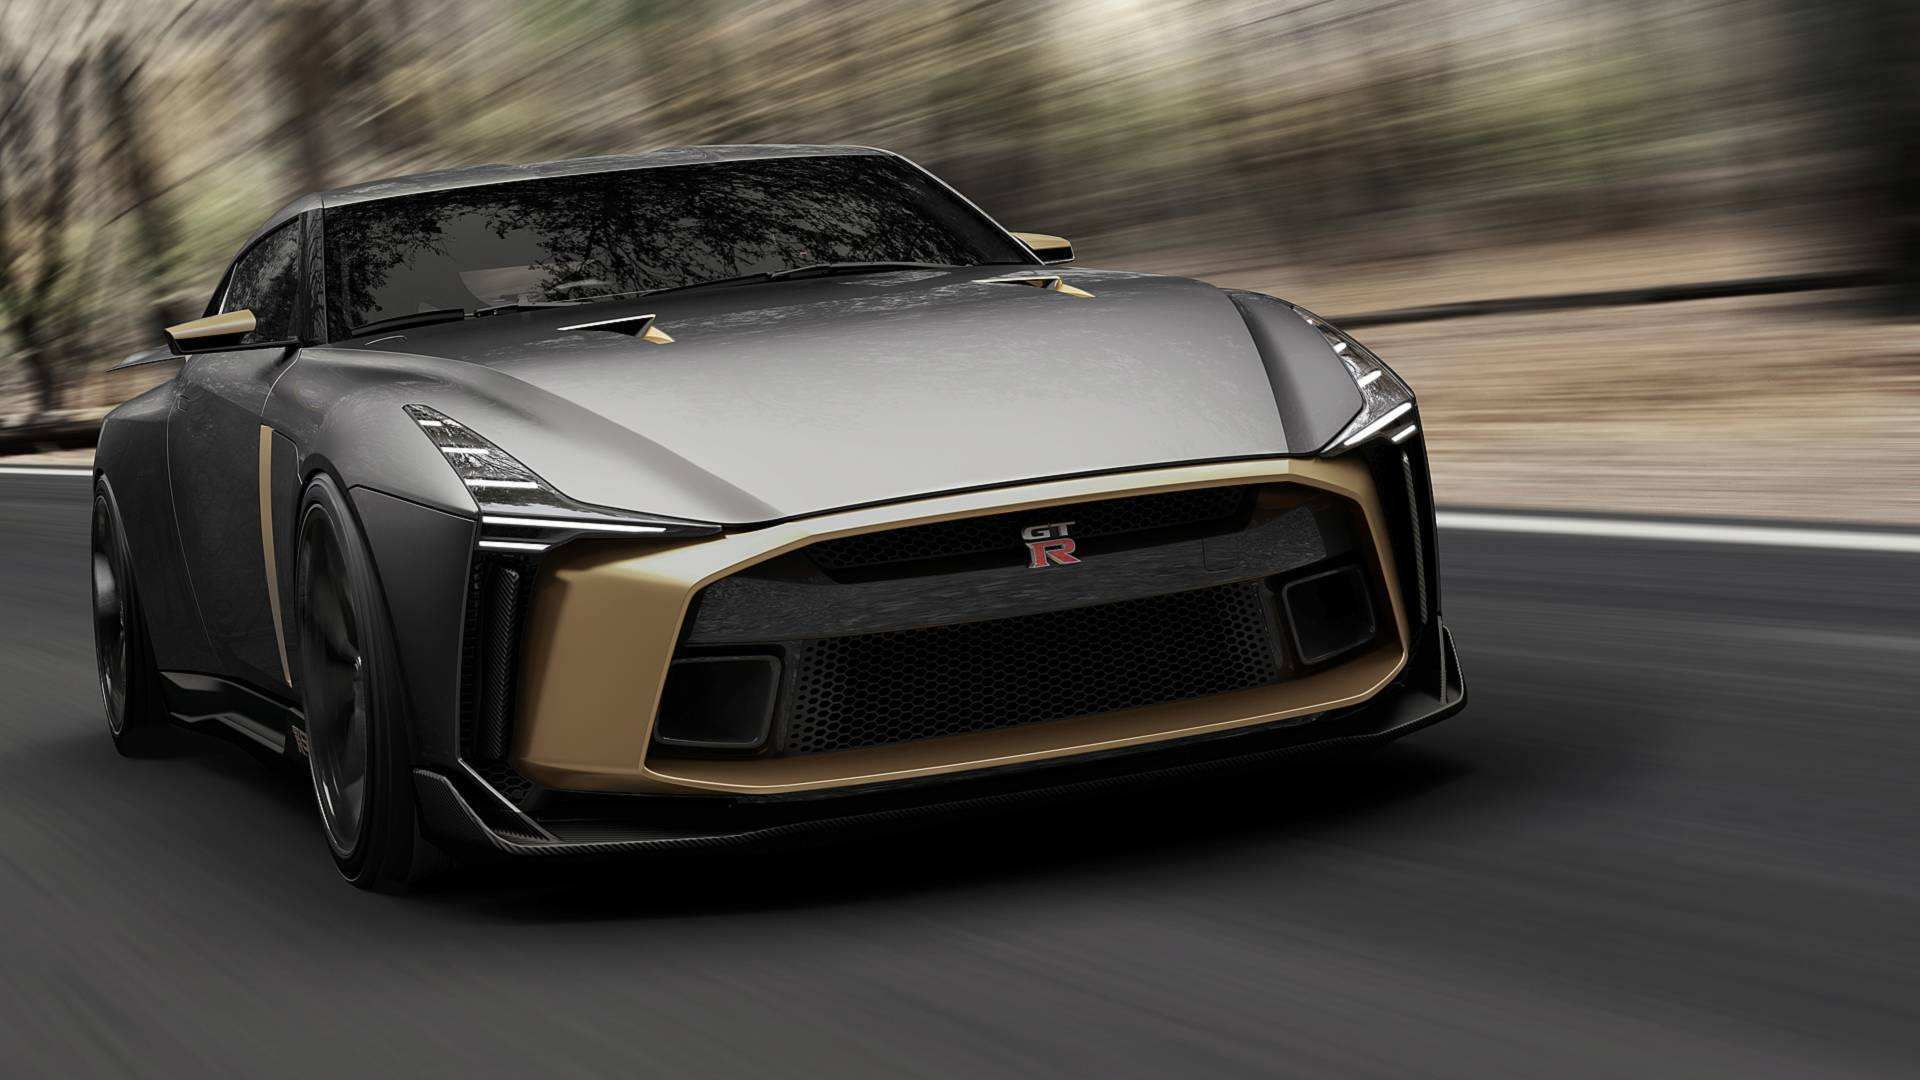 45 New Nissan Skyline 2019 New Concept New Review with Nissan Skyline 2019 New Concept